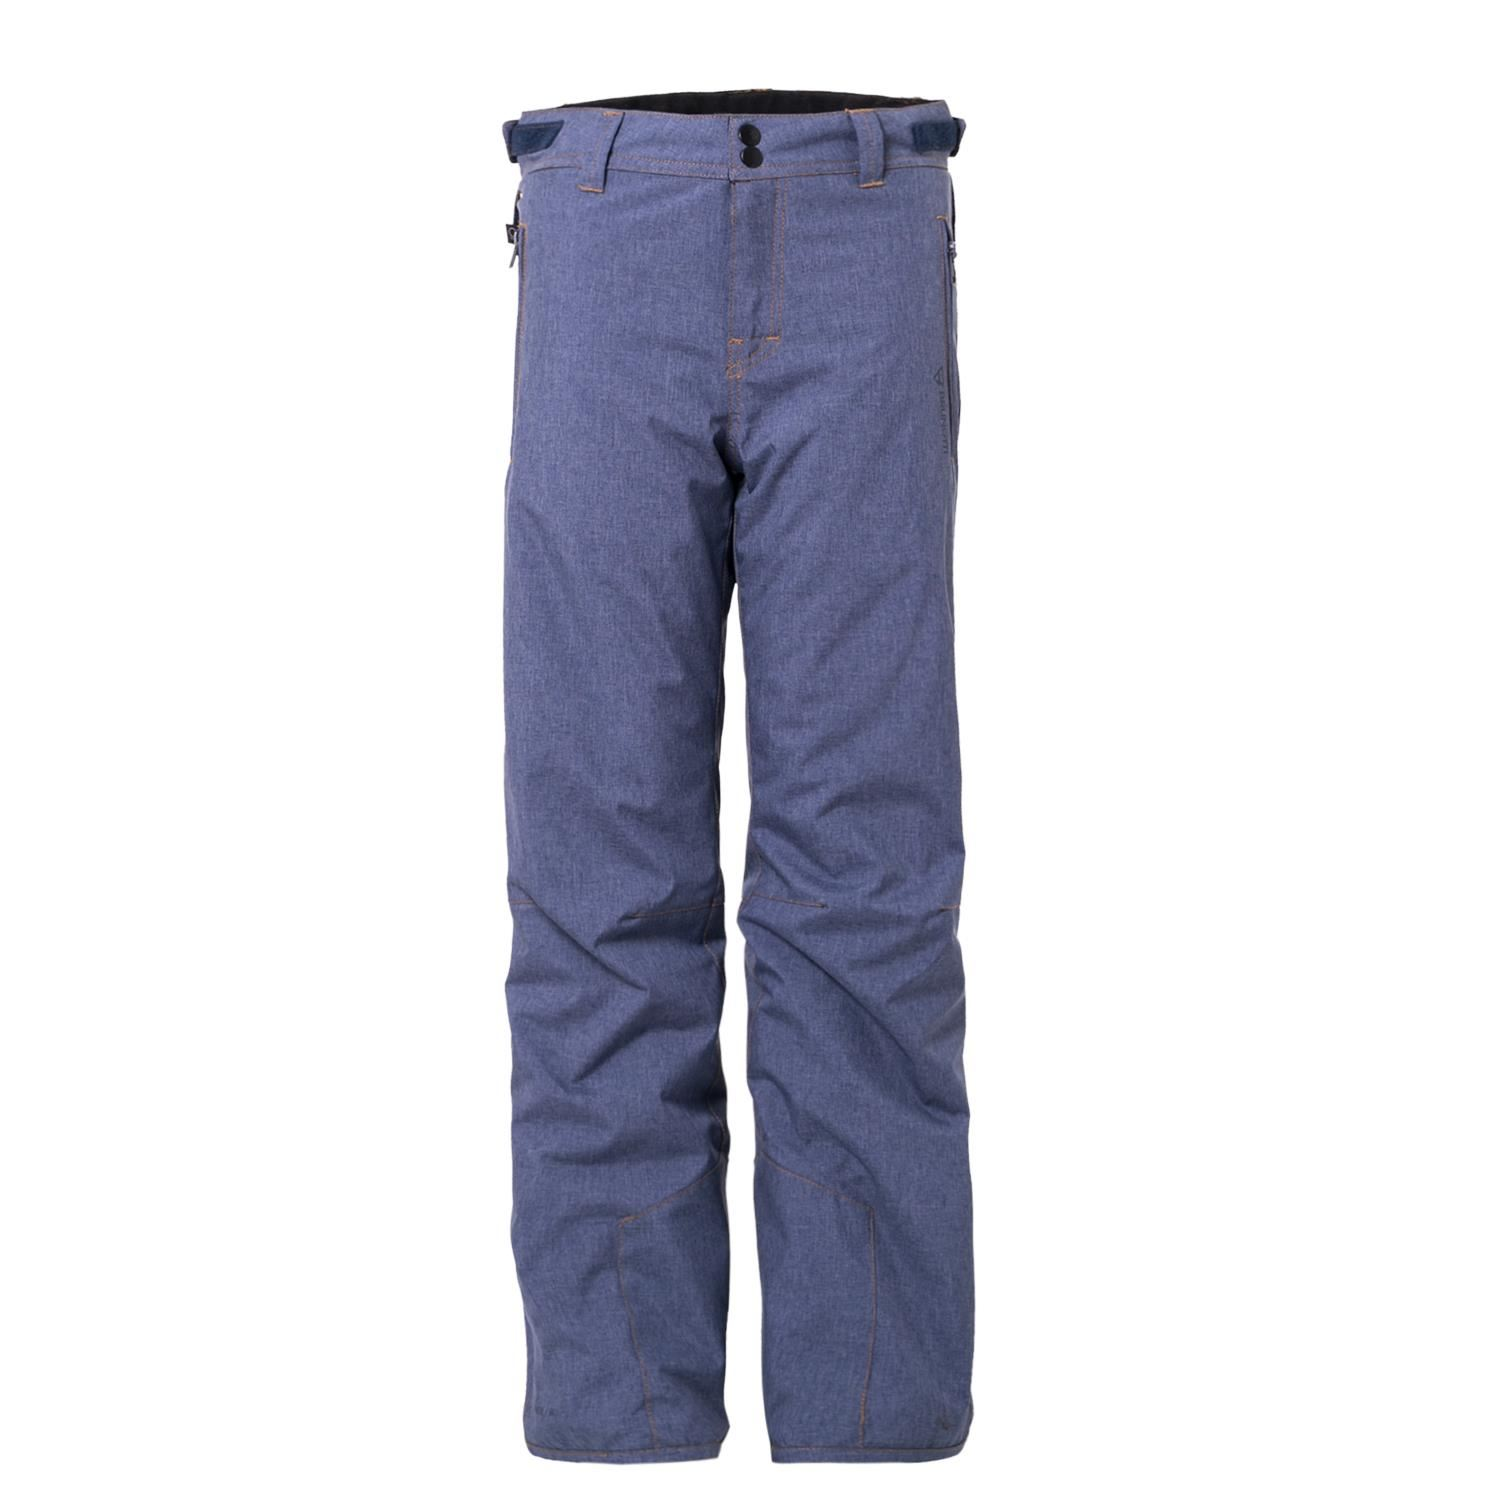 Brunotti Kitebar JR Melange Boys Snowpants